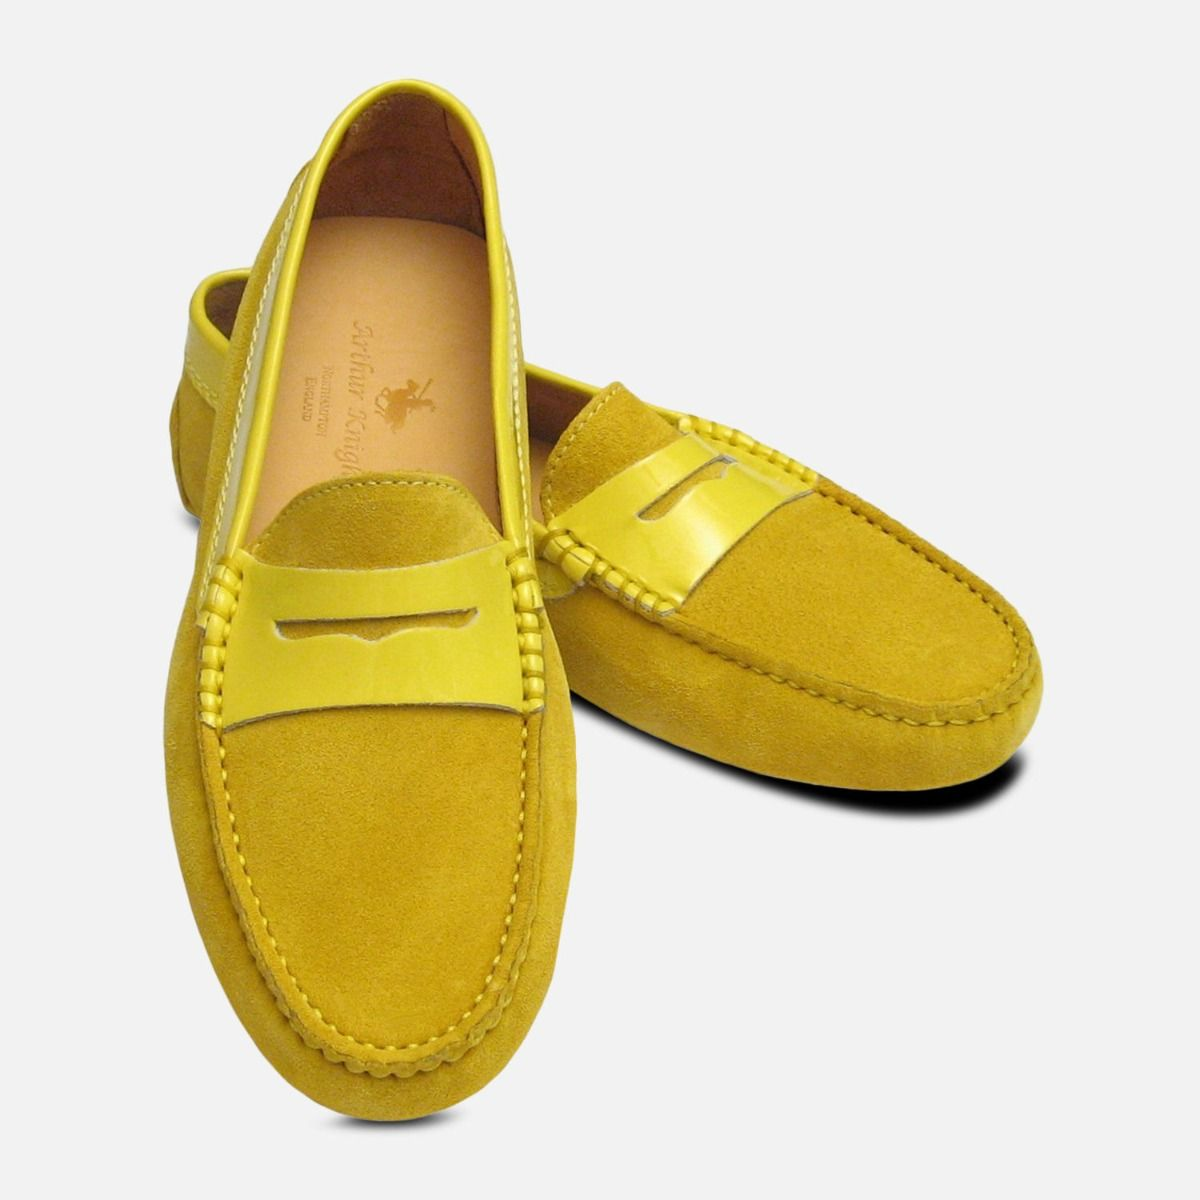 822a526caf5 Mustard Yellow Suede & Patent Leather Designer Womens Italian Driving Shoes